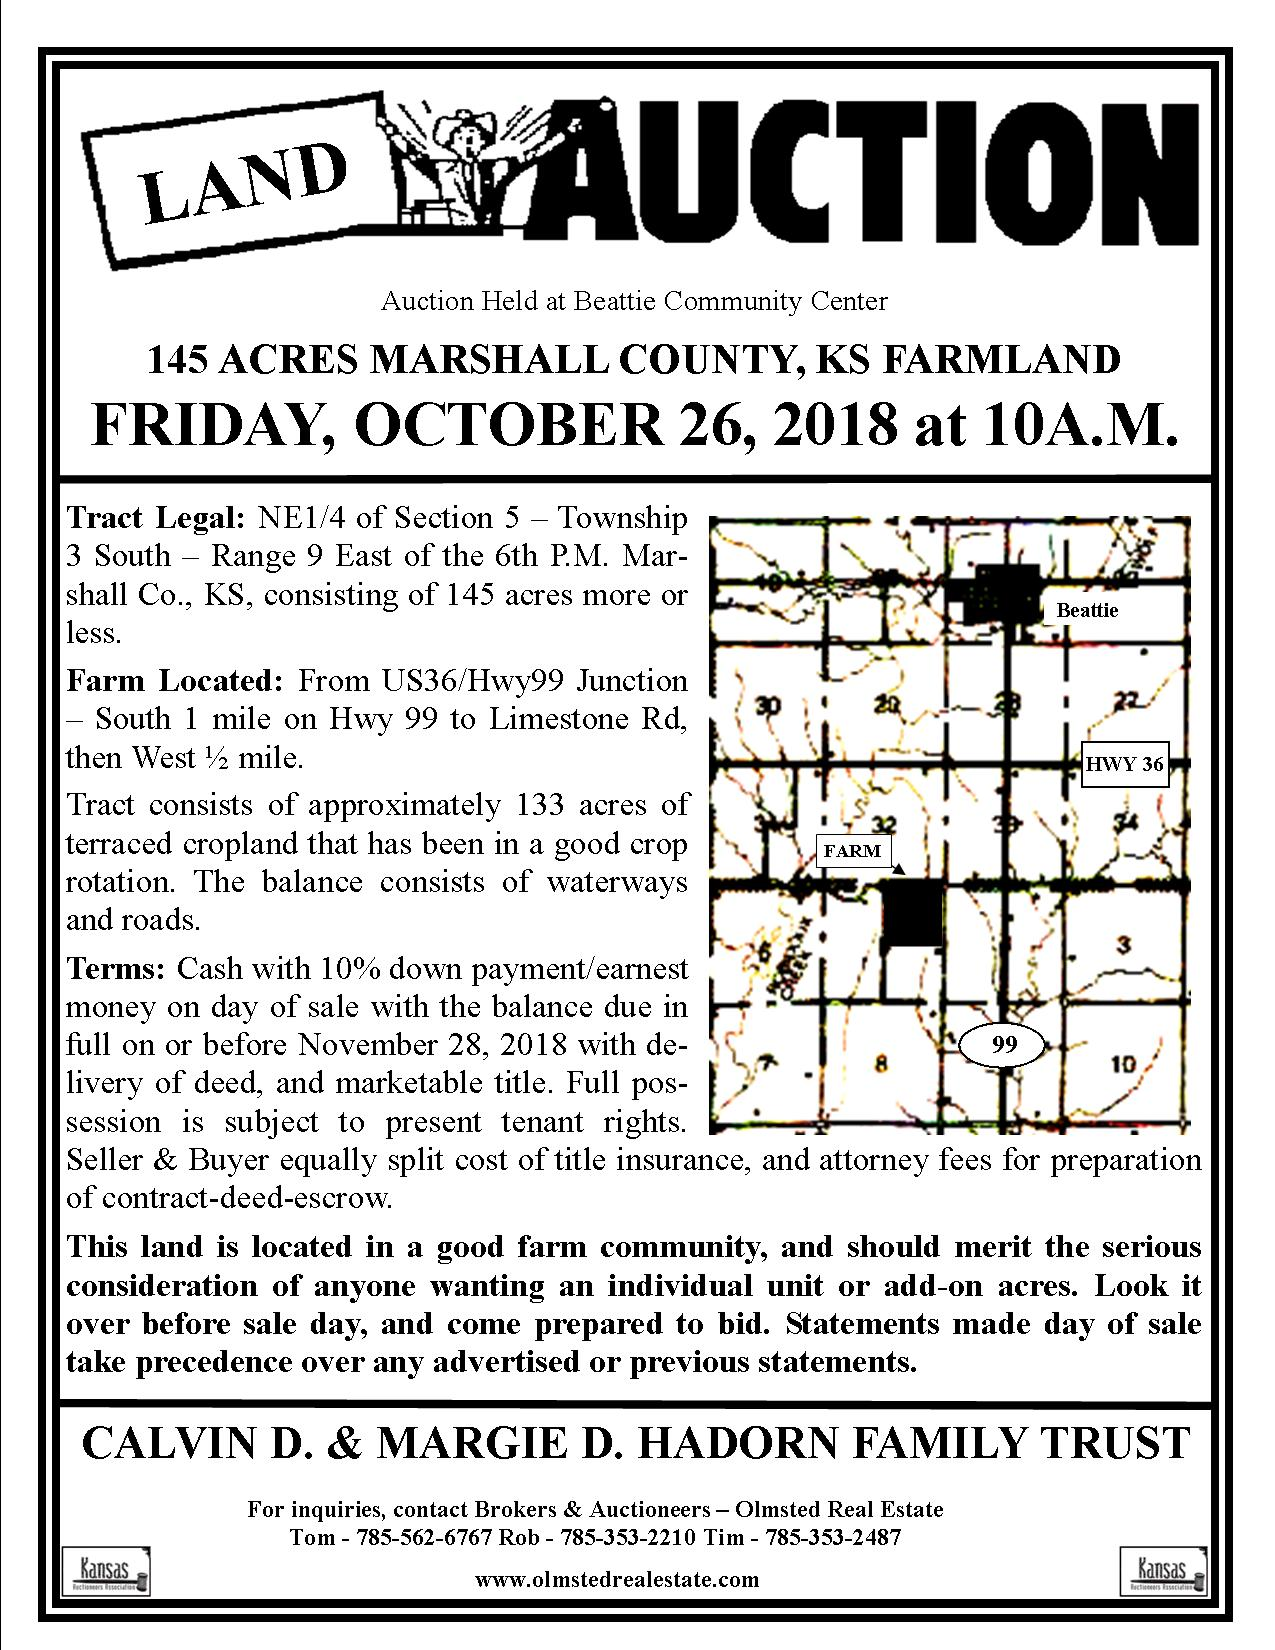 Olmsted Real Estate and Auctions